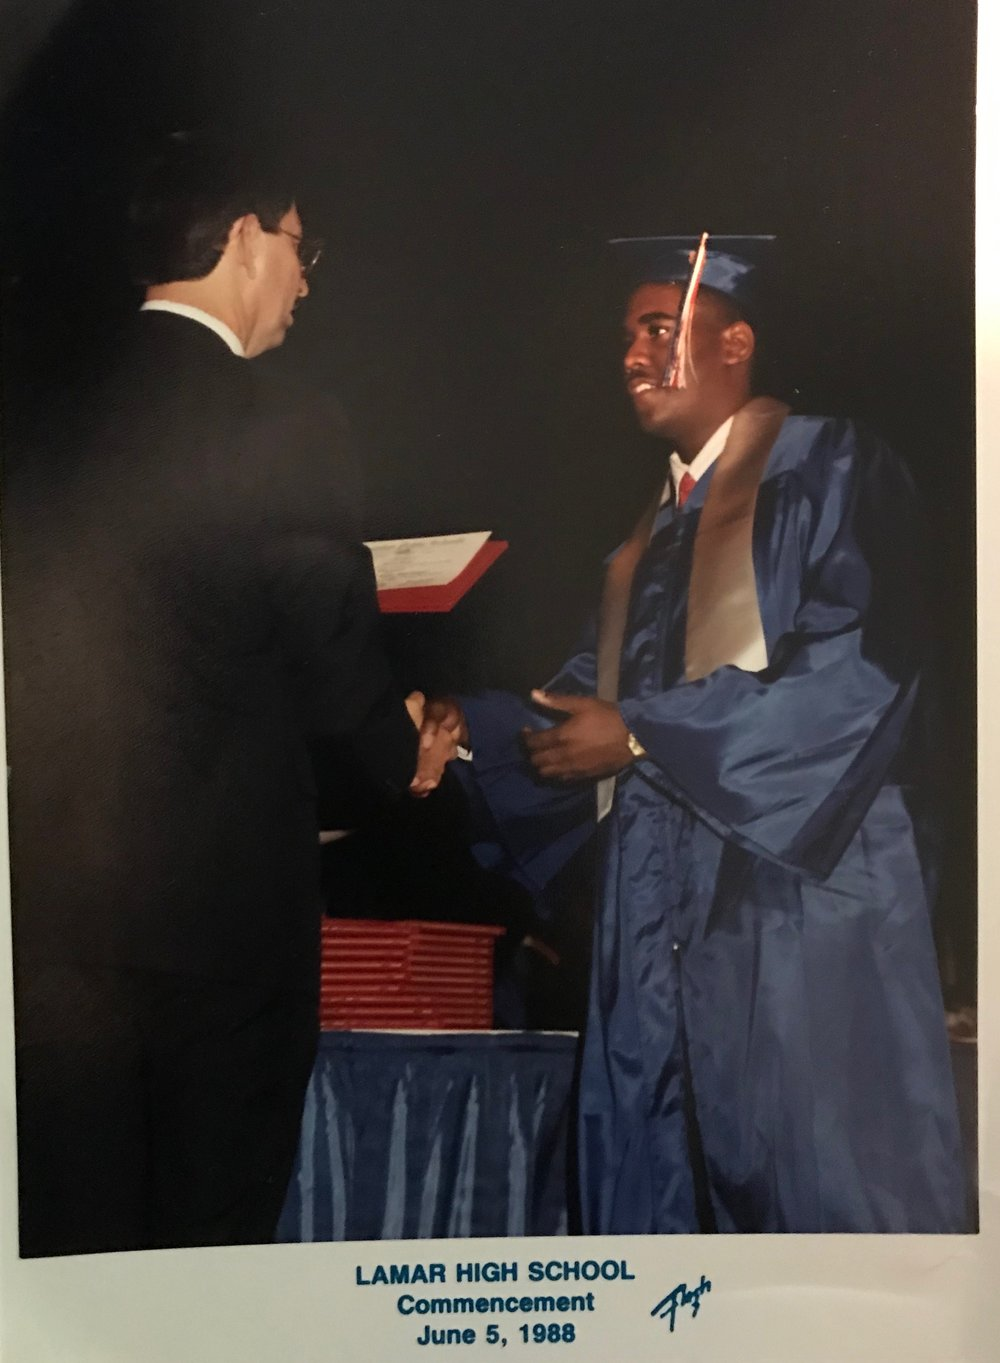 Dennis Stoot graduates from Lamar High School on June 5, 1988. His knowledge and memory will never be forgotten.